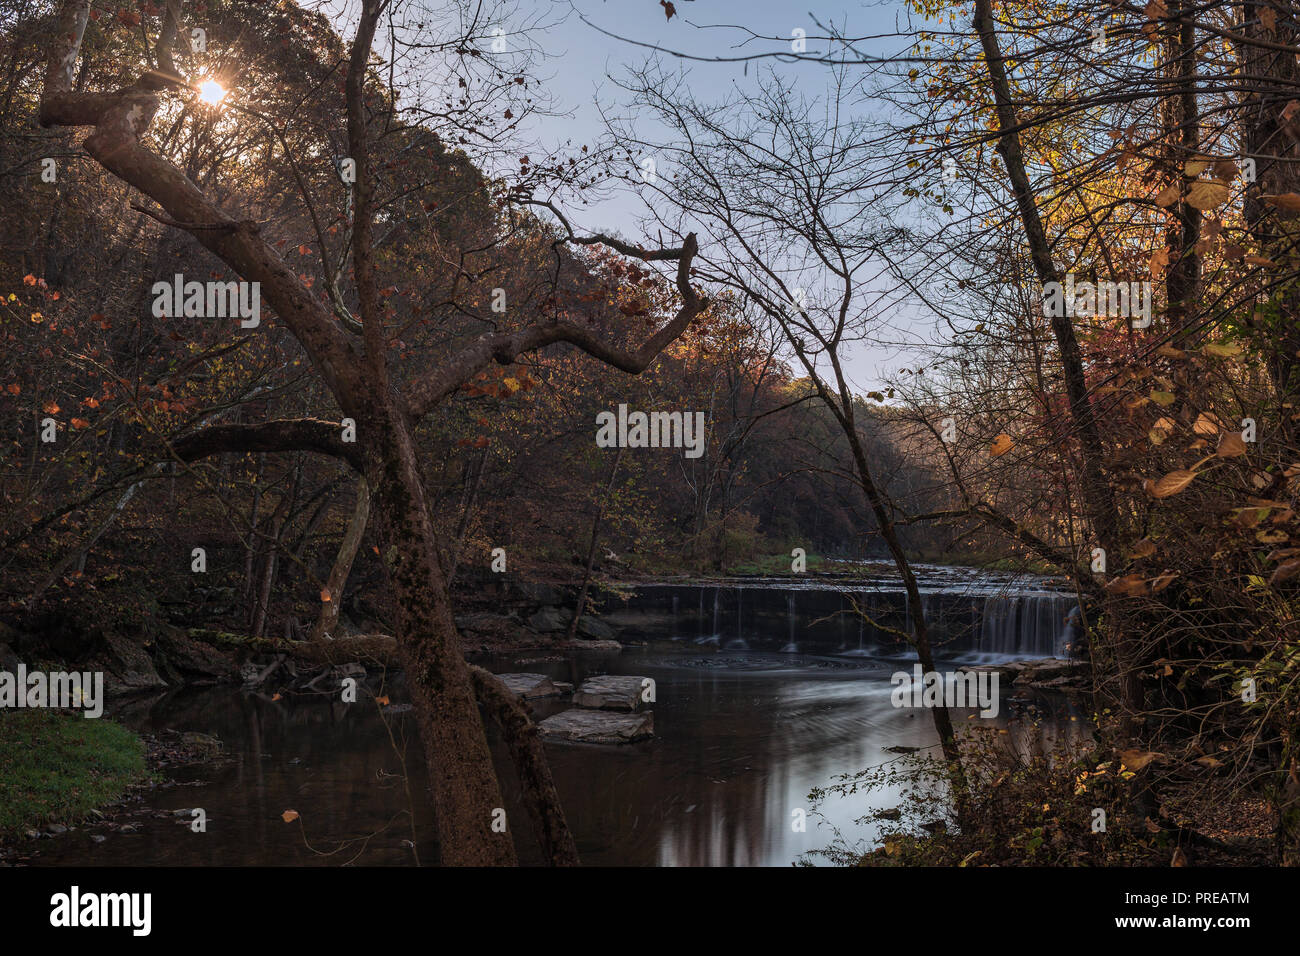 The sun peaks through a line of trees on Clifty Creek in Bartholomew County, IN.  Anderson Falls is in the background of this fall scene. - Stock Image